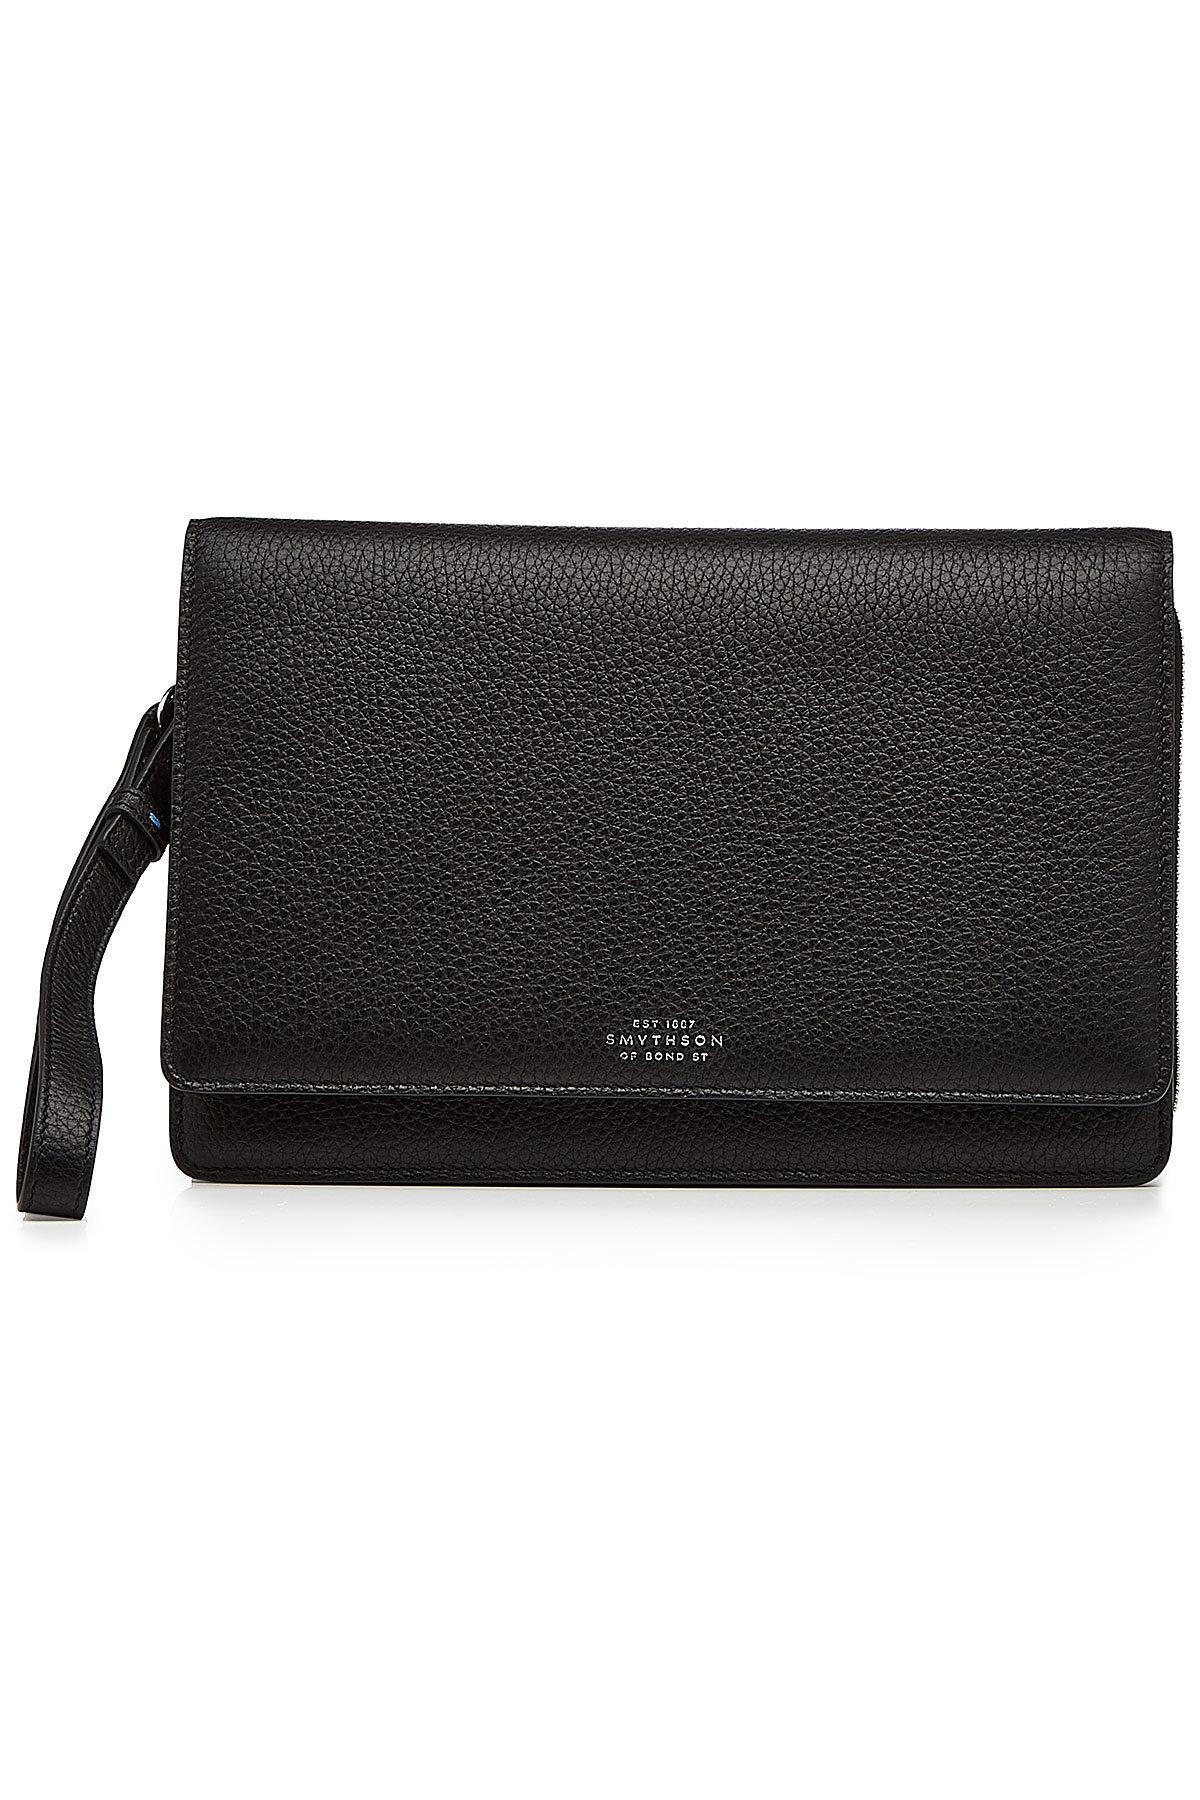 Smythson Leather Pouch In Black